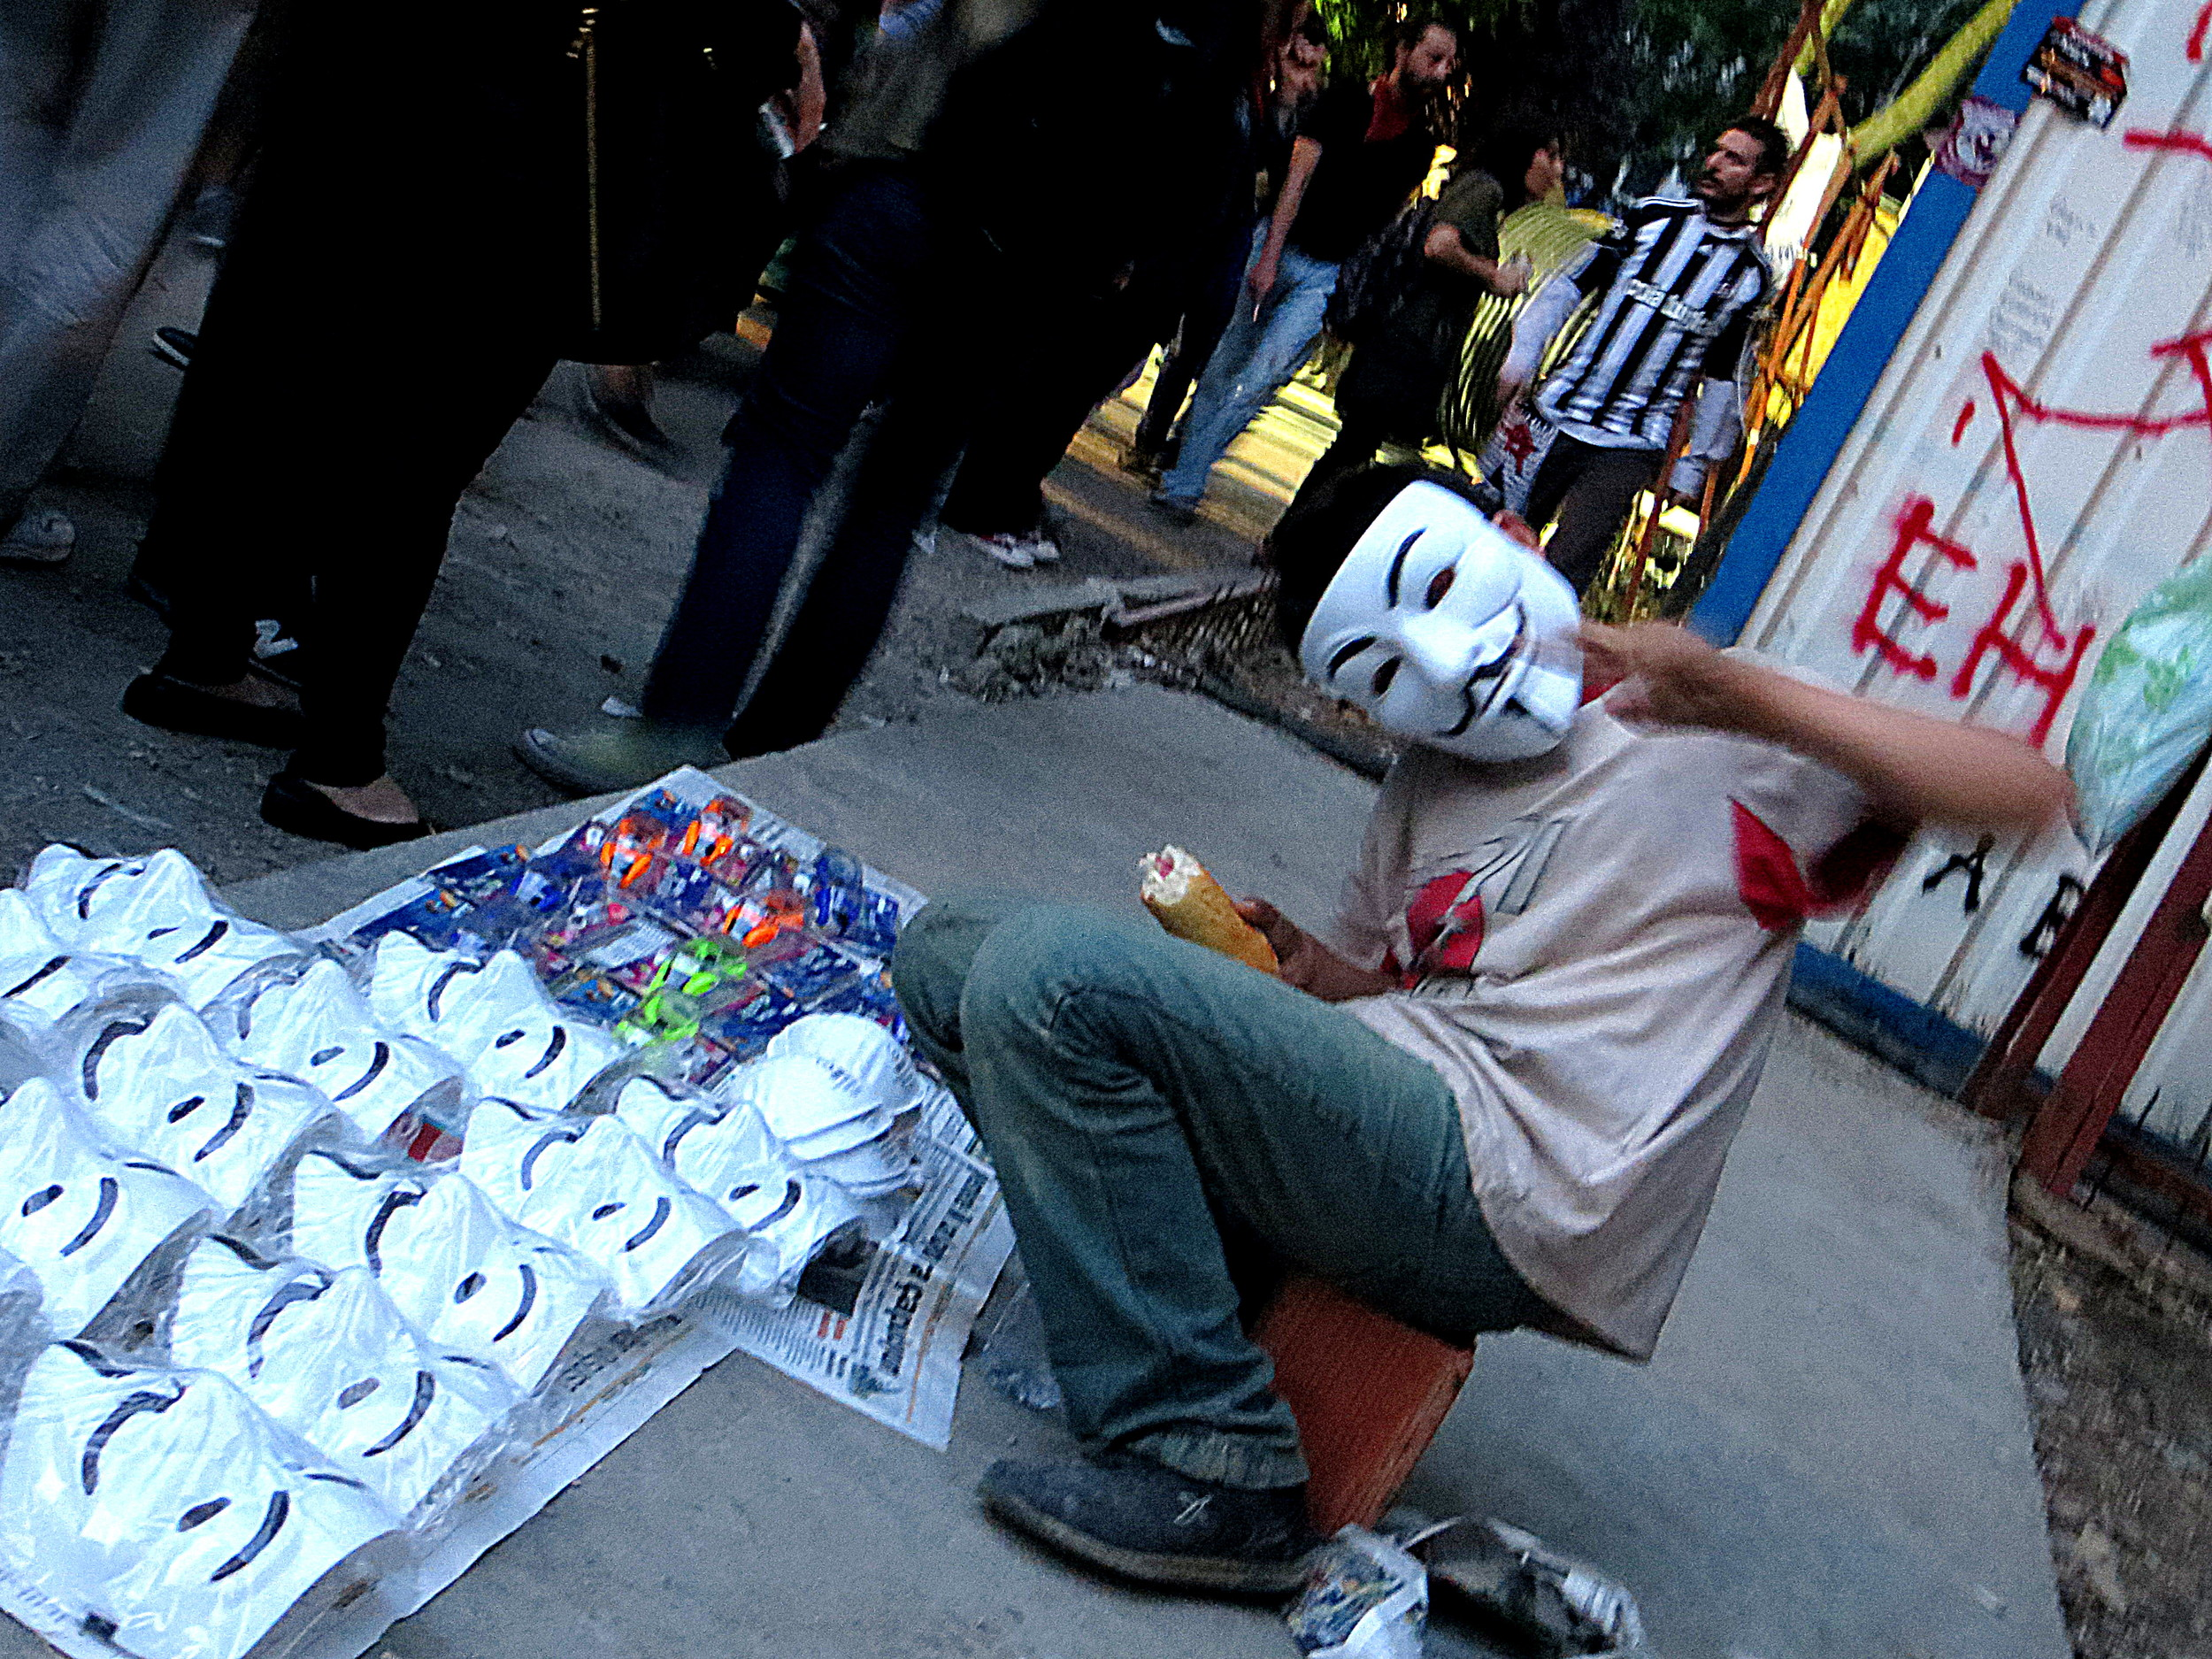 A kid sells Guy Fawkes masks in Gezi Park.